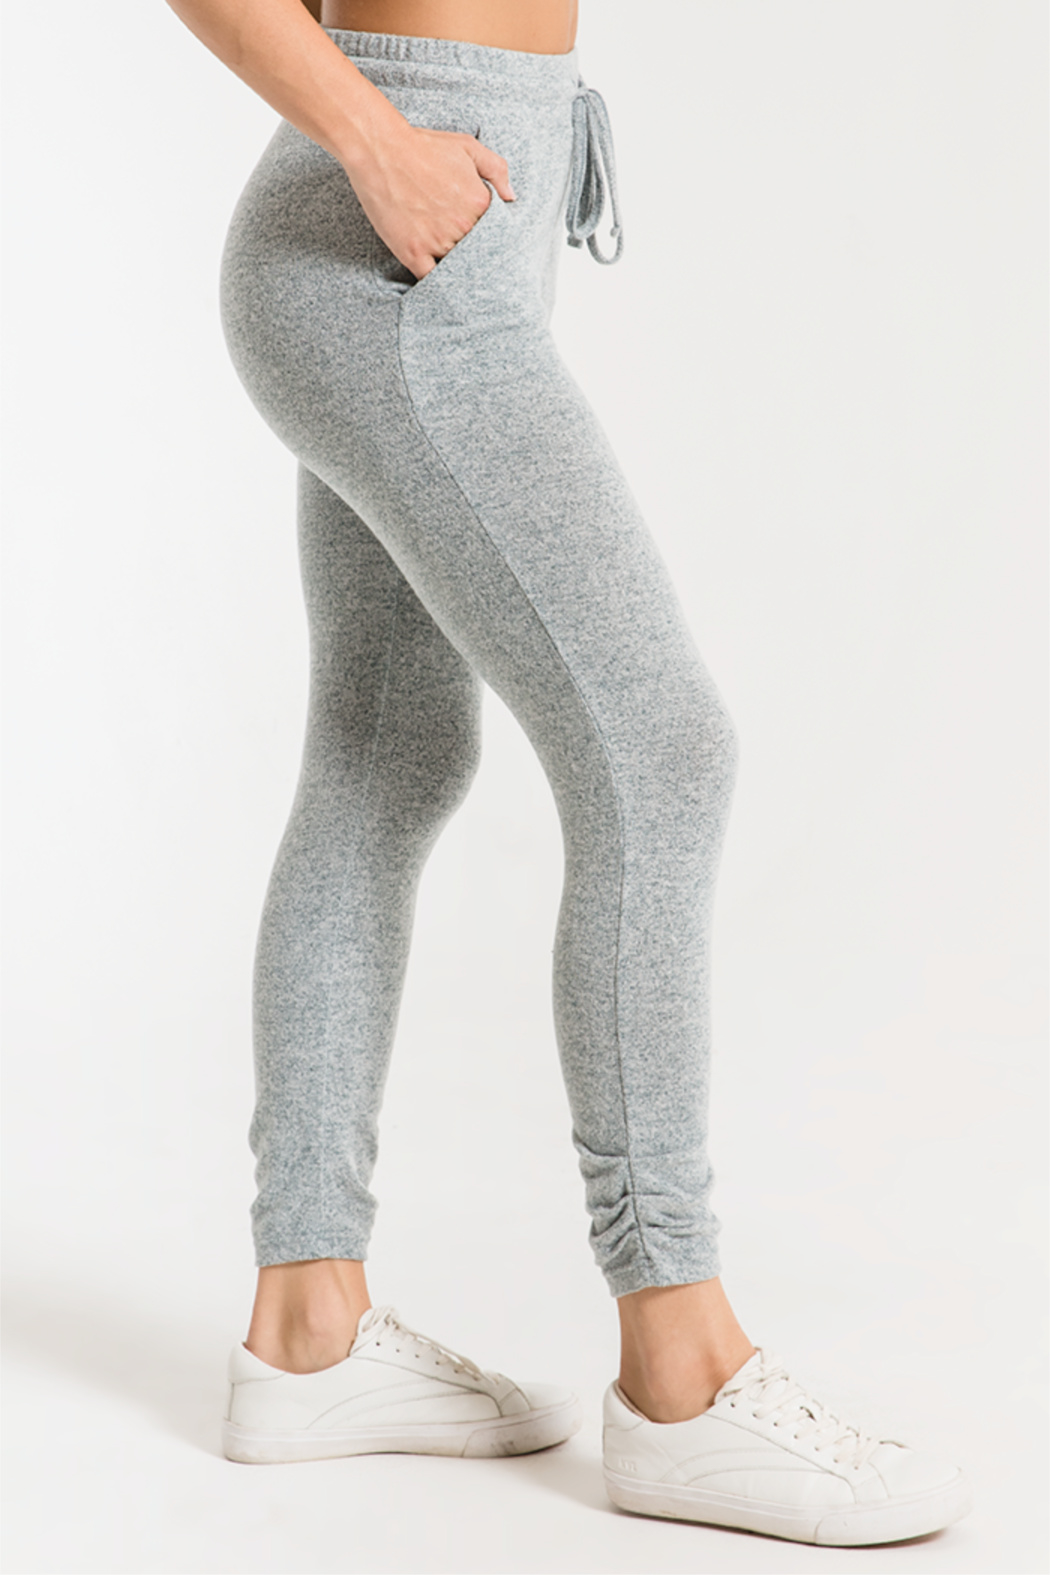 z supply Marled Knit Jogger - Front Full Image